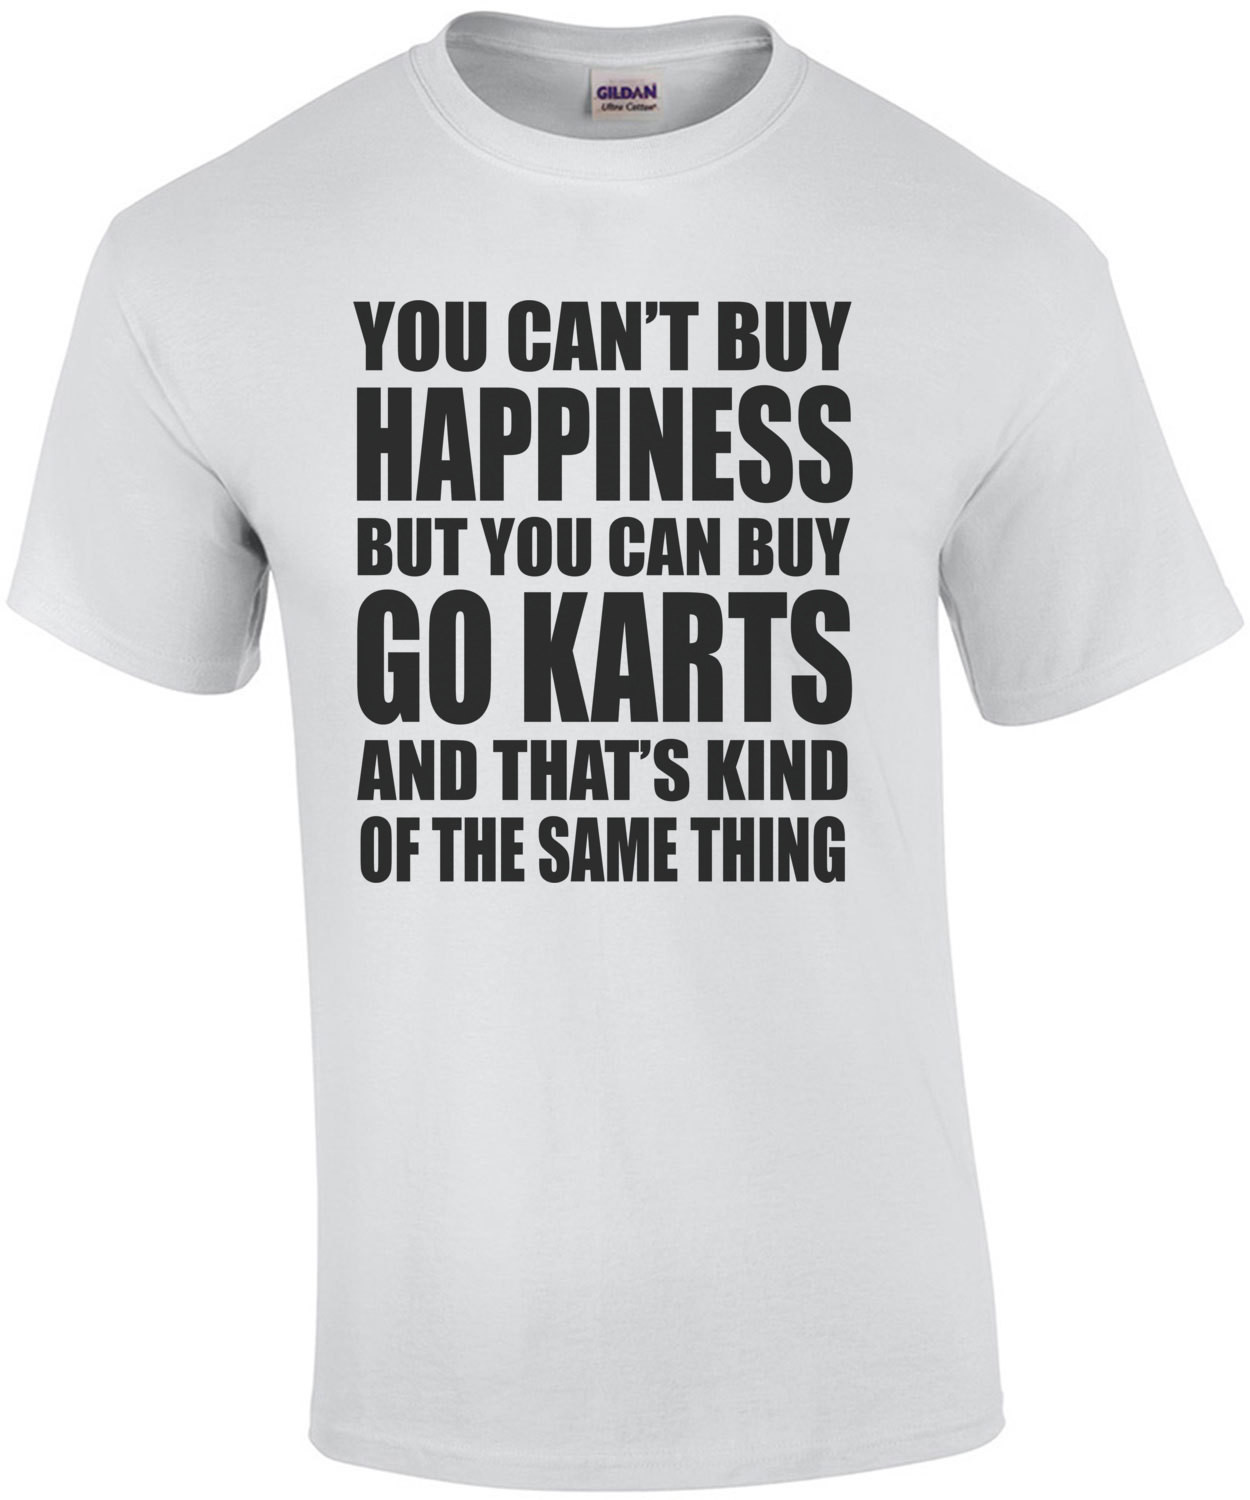 You Cant Buy Happiness But You Can Buy Go Karts And Thats Kind Of The Same Thing T-Shirt